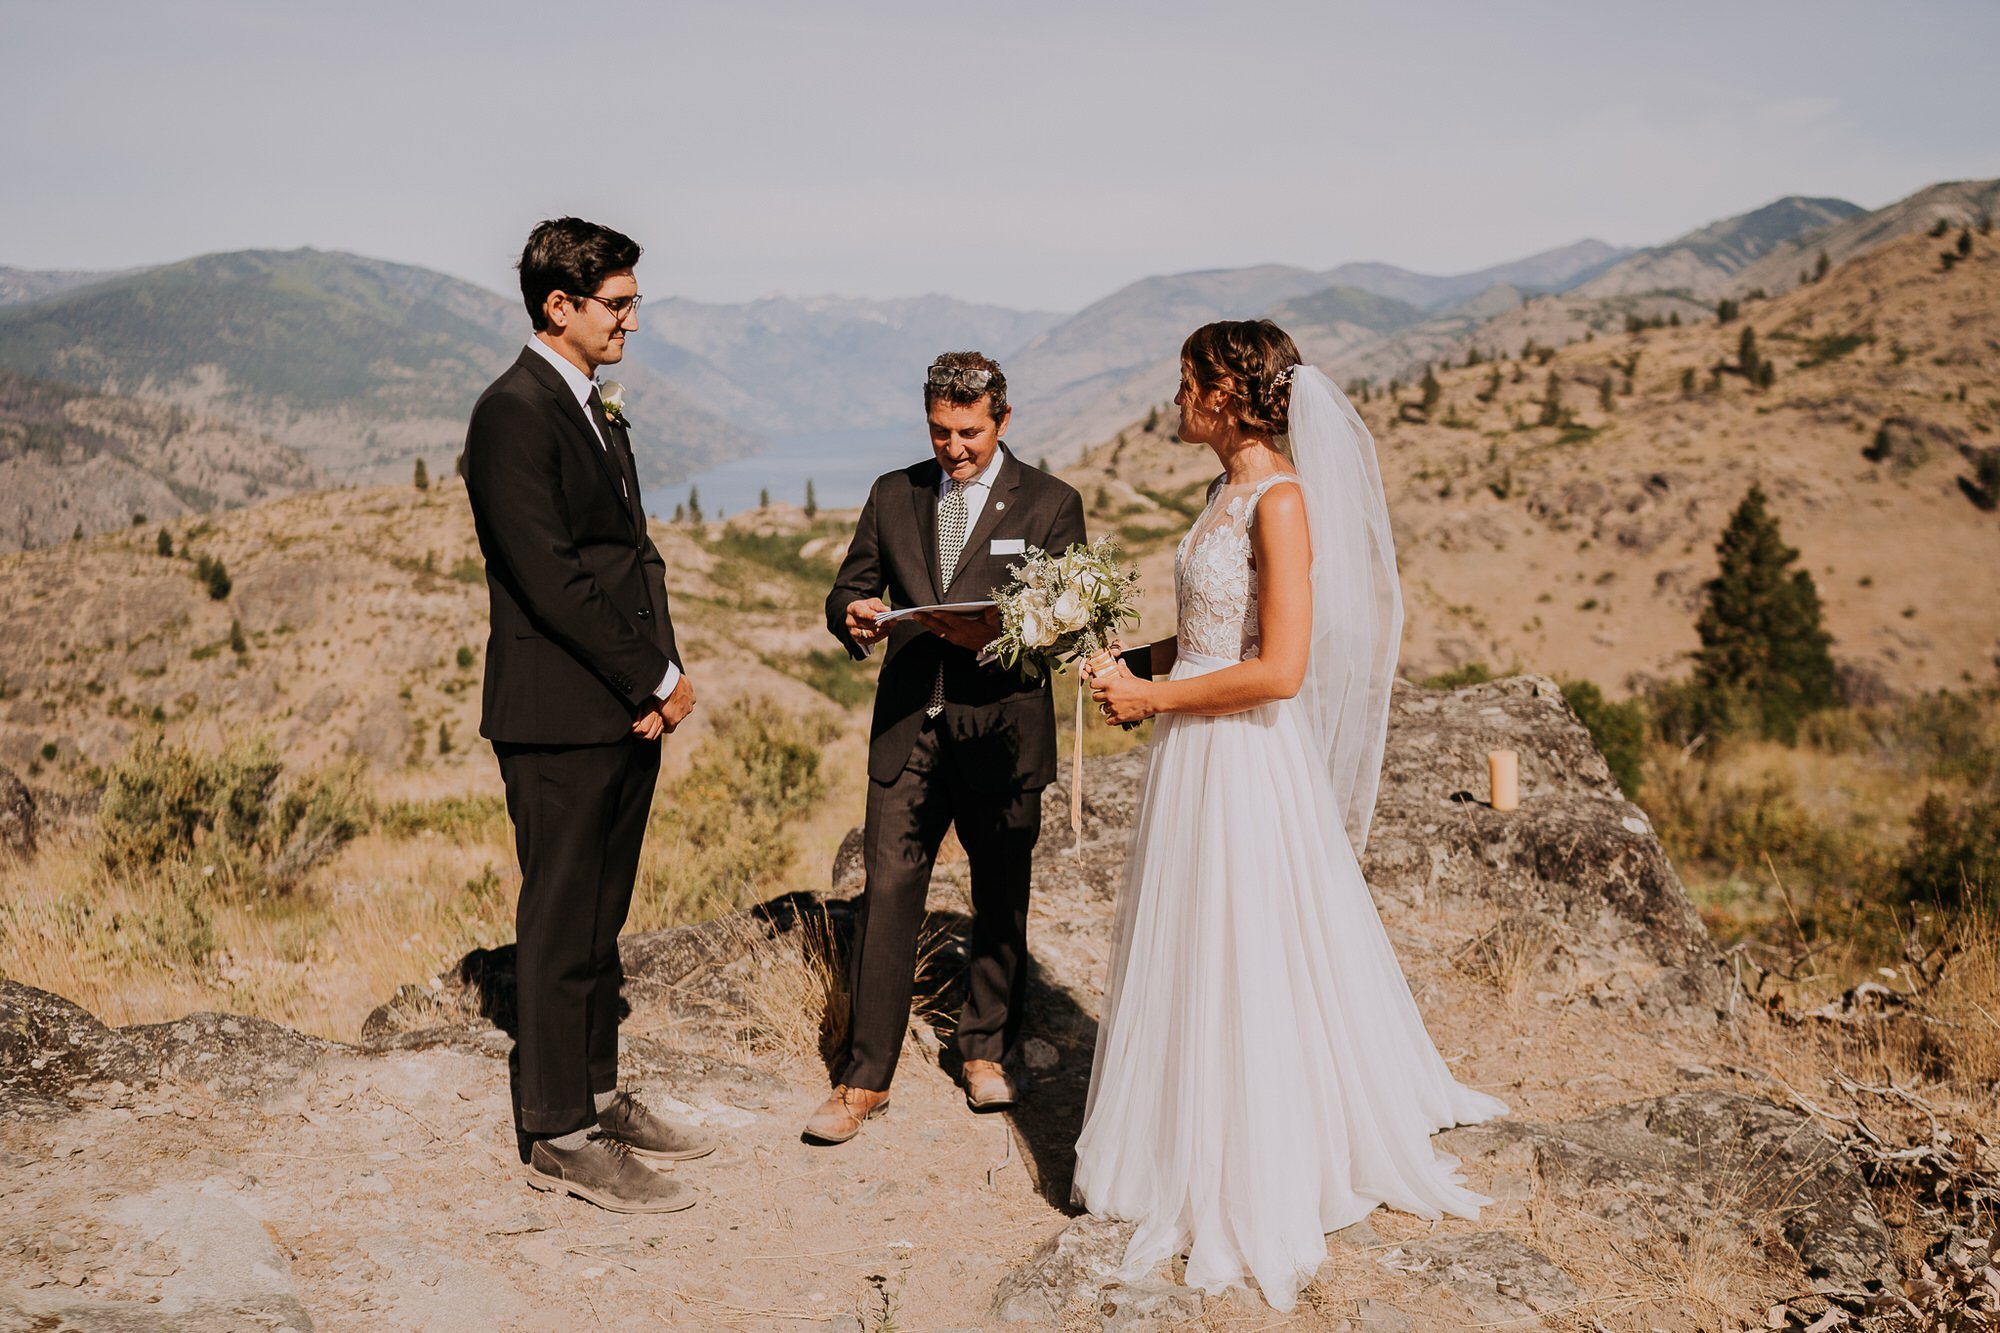 Lake Chelan Wedding ceremony with uncle officiating